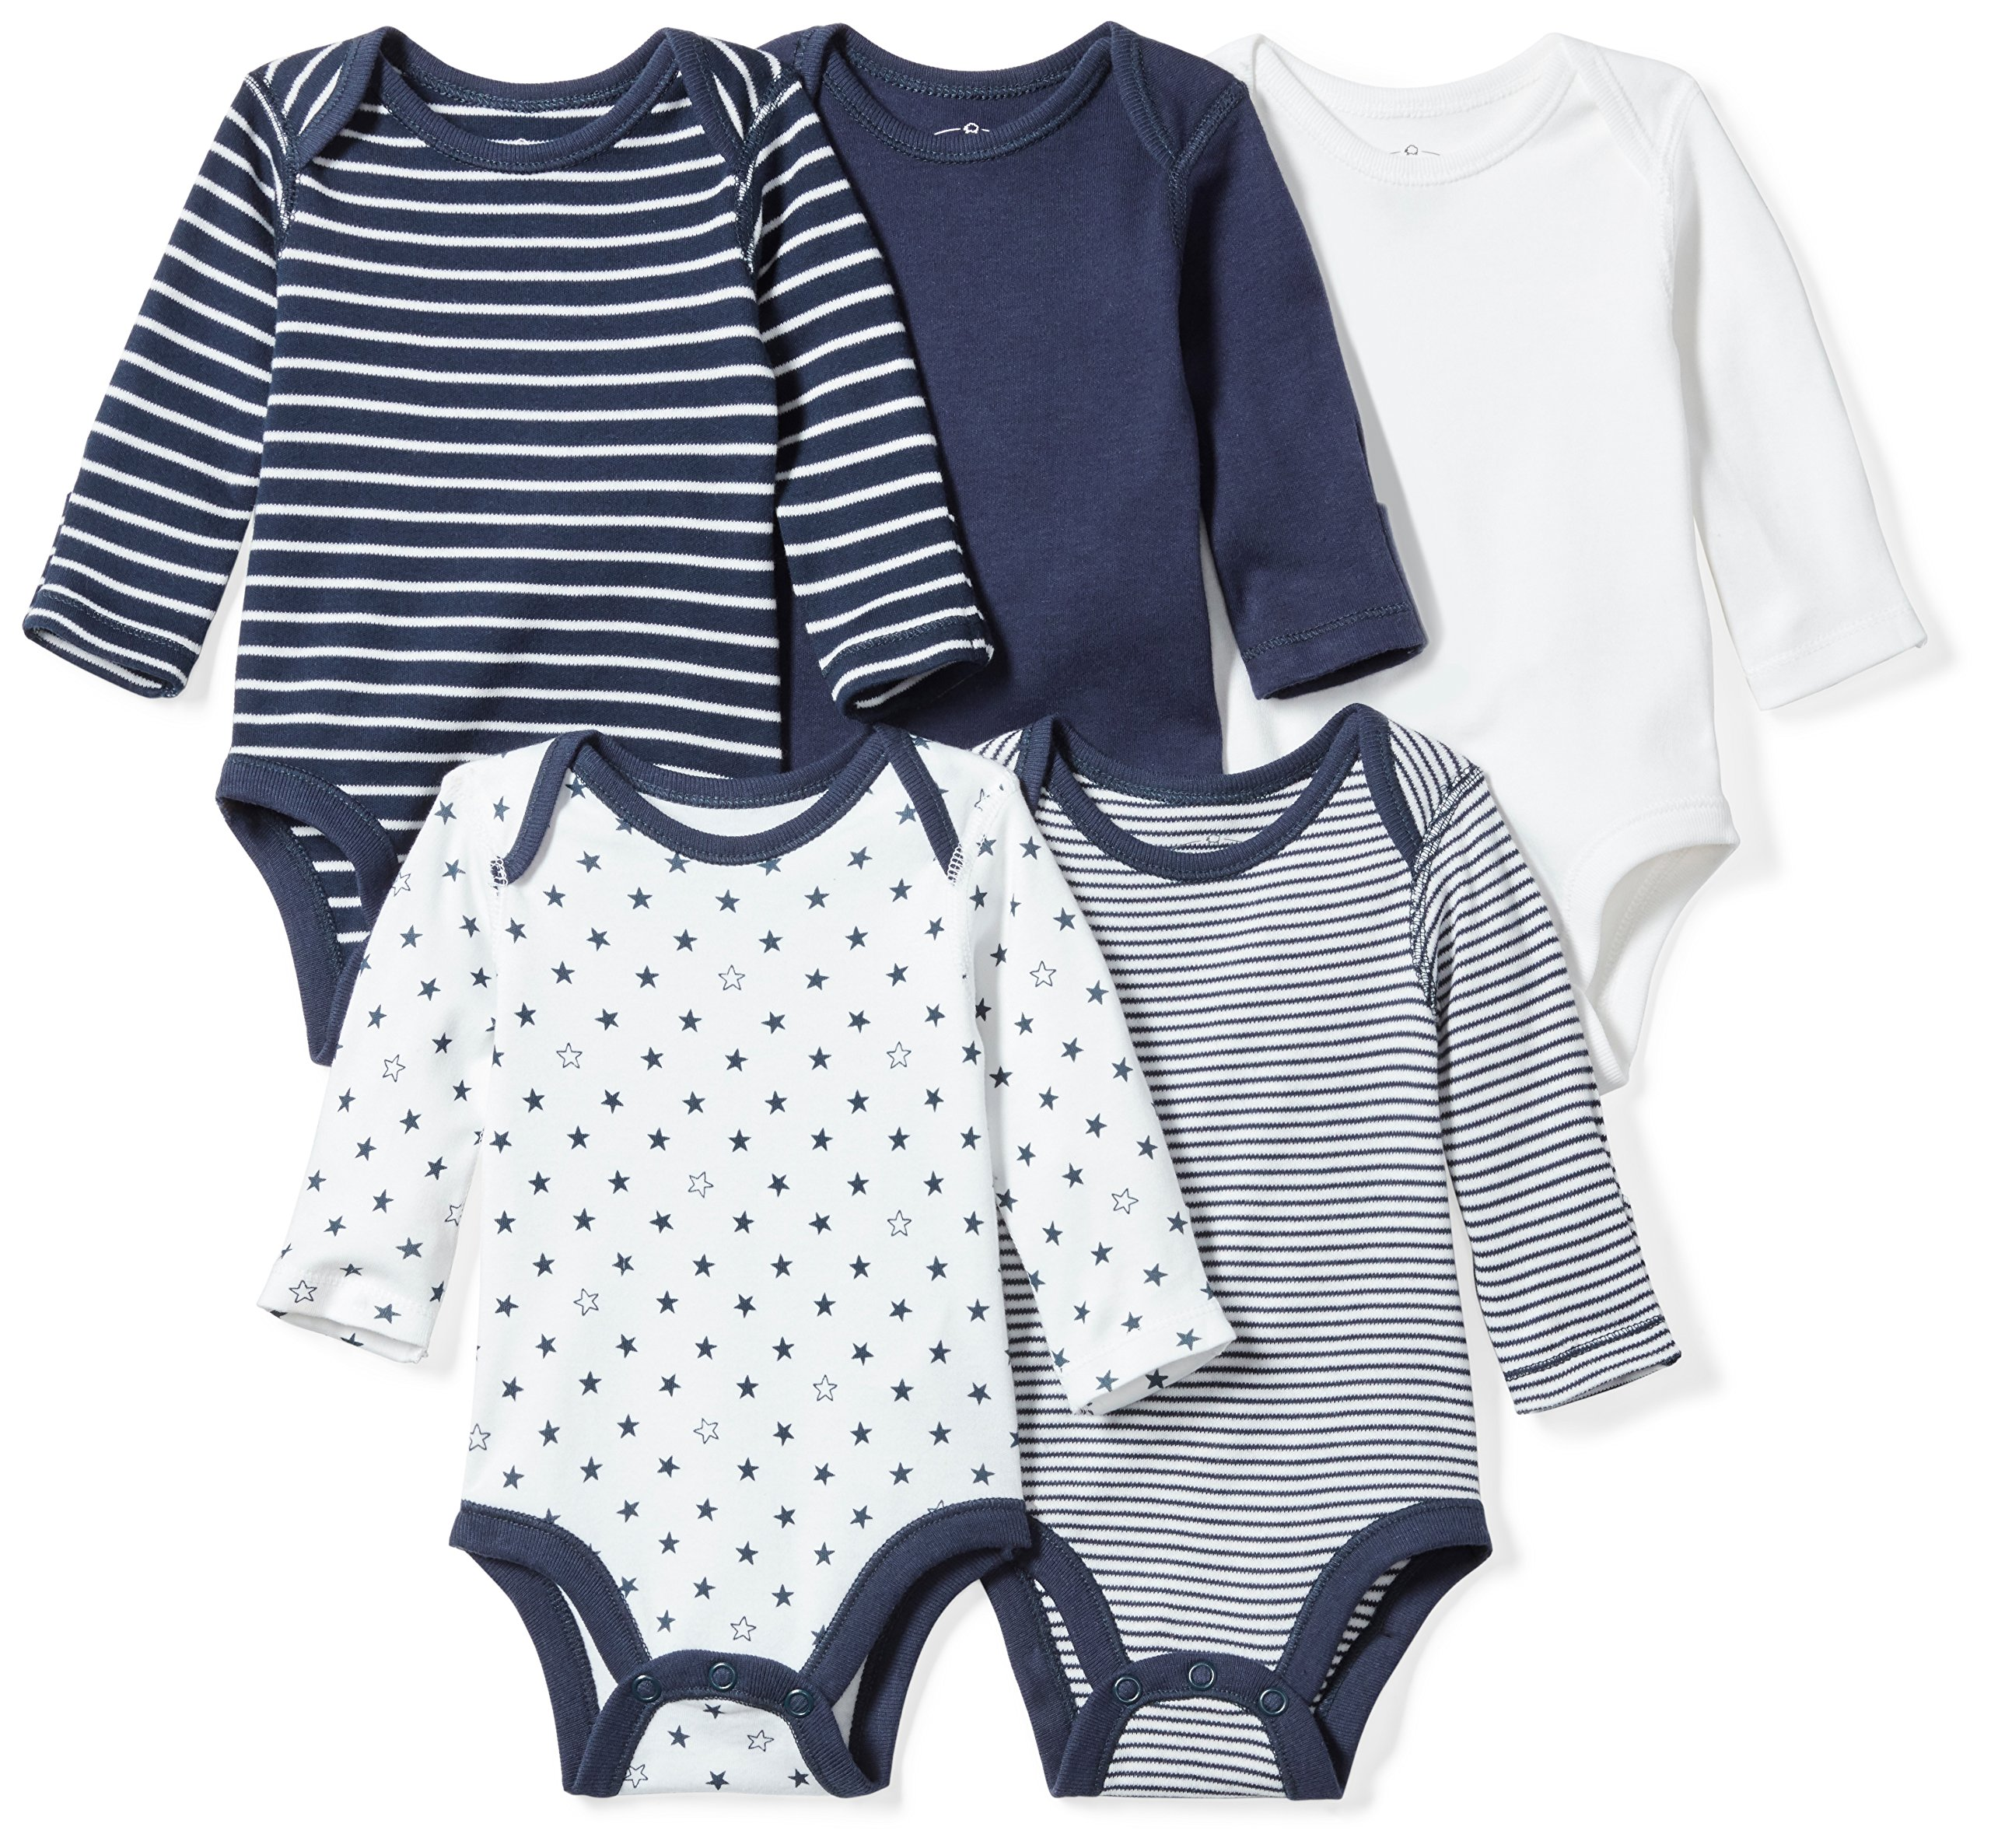 Moon and Back Baby Set of 5 Organic Long-Sleeve Bodysuits, Navy Sea, 12 Months